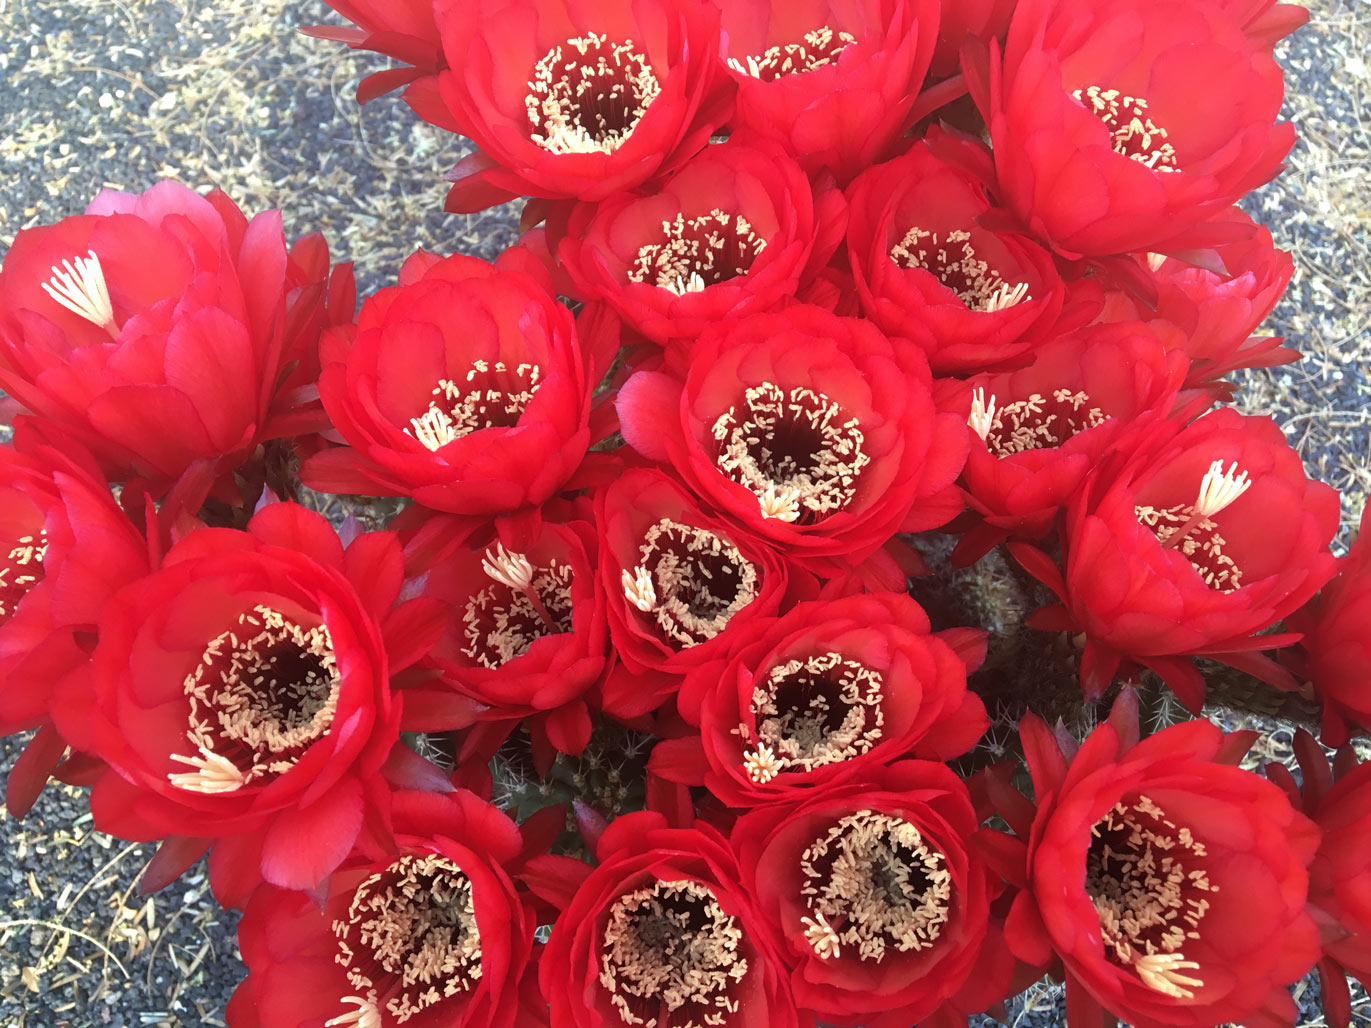 Several bright red Torch Cactus flowers bloom.